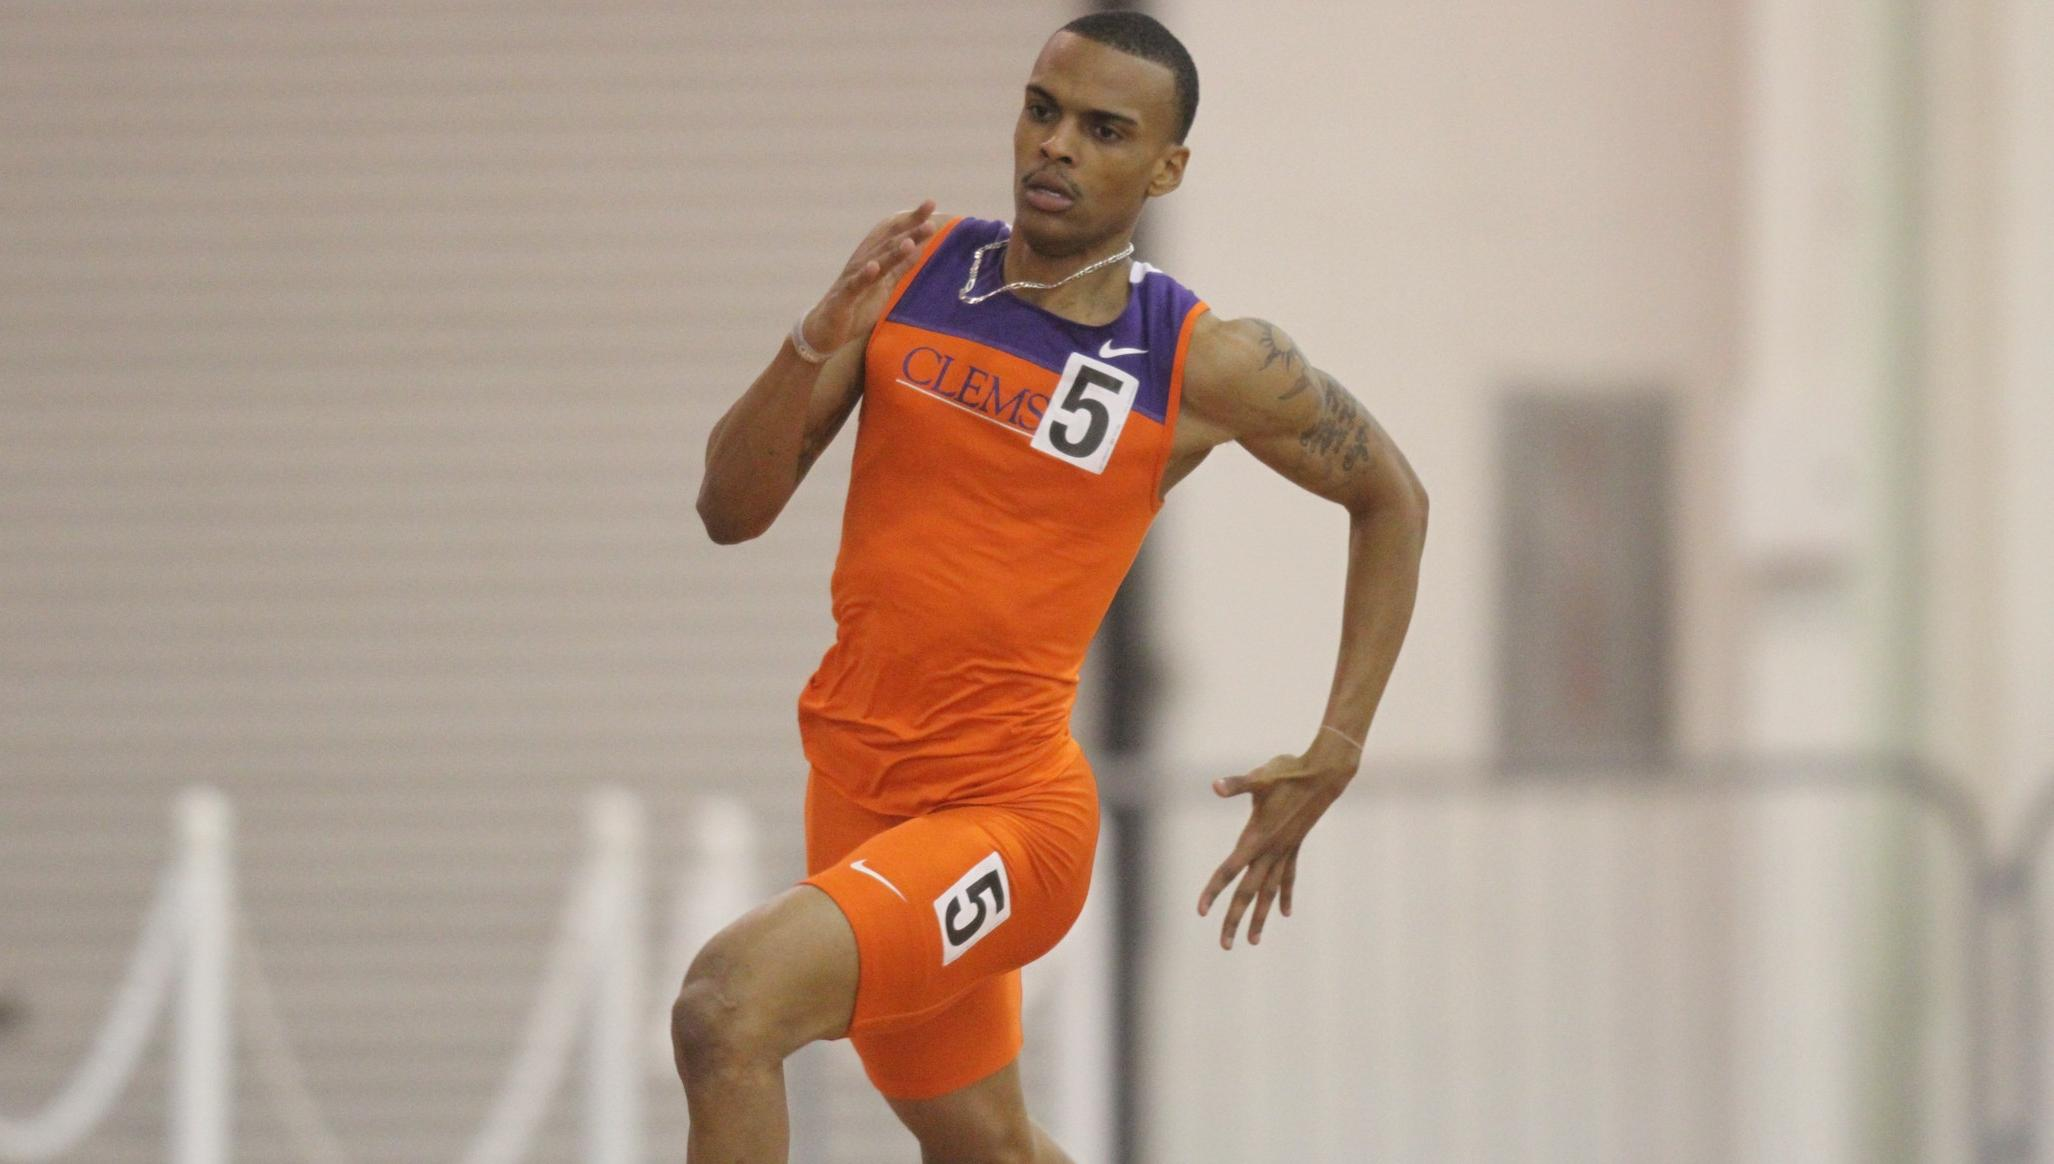 Track & Field Returns to Action at Auburn Invitational